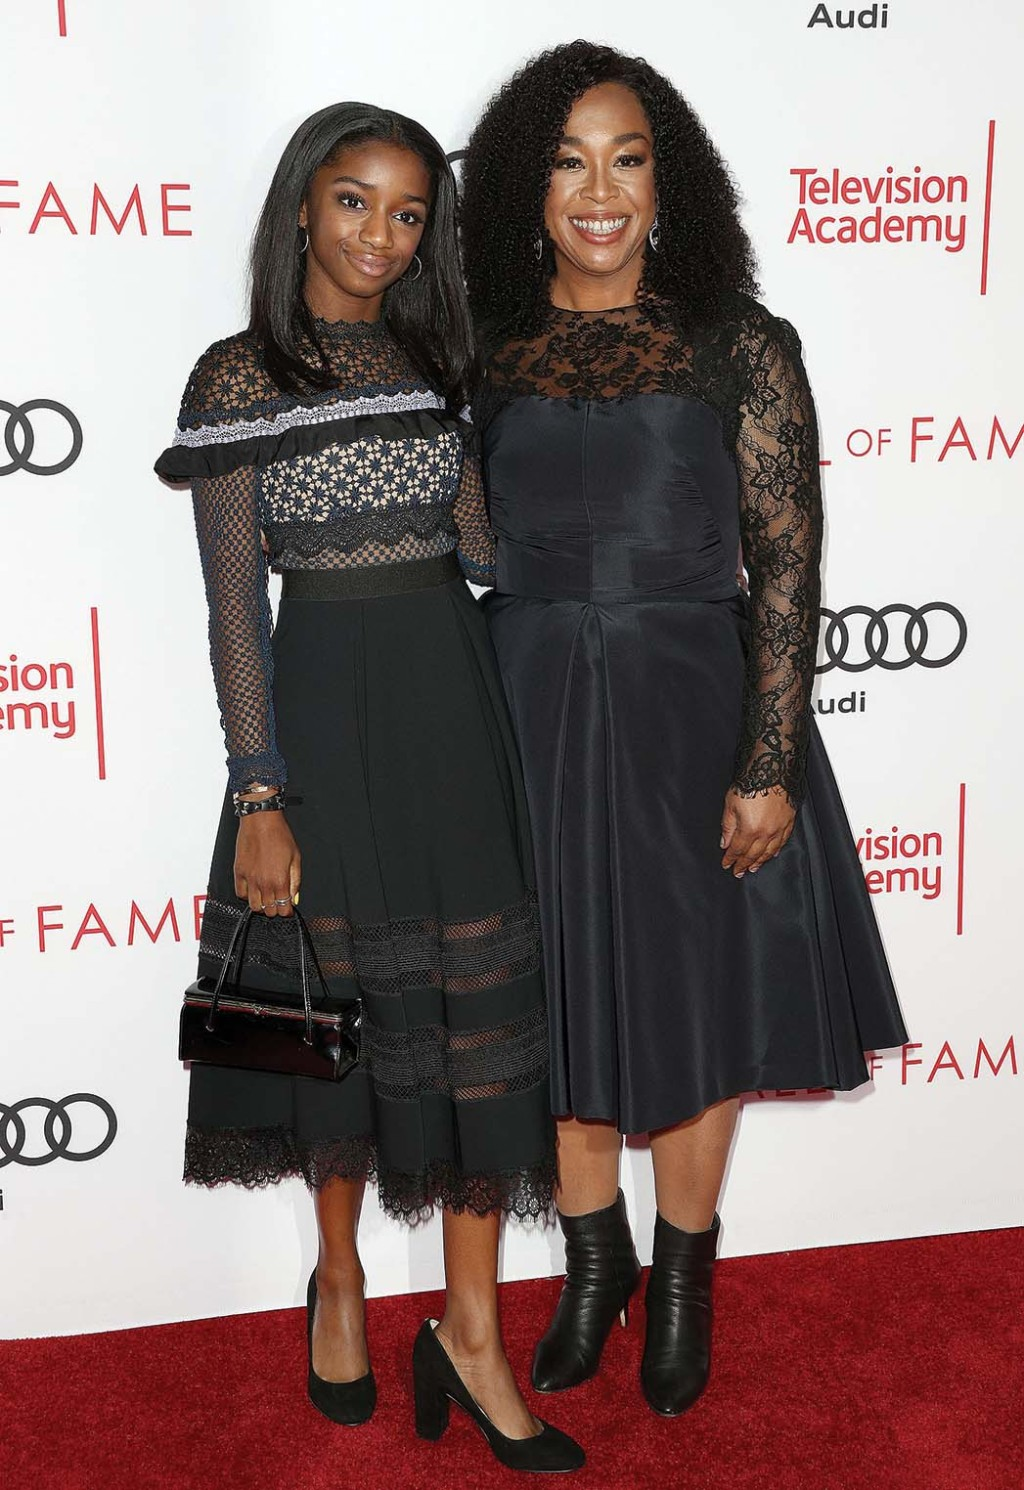 Shonda Rhimes and her daughter